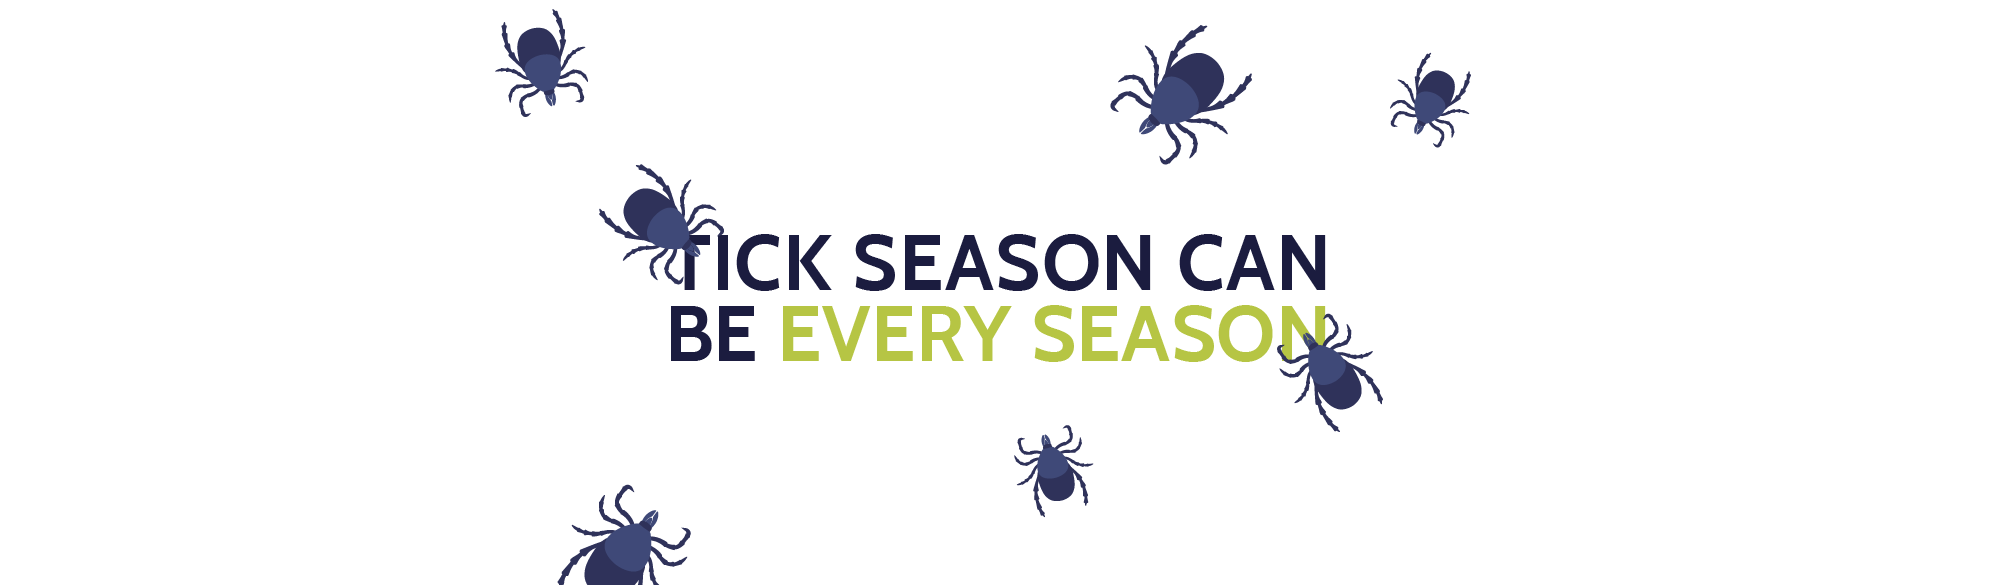 Tick season can be every season.